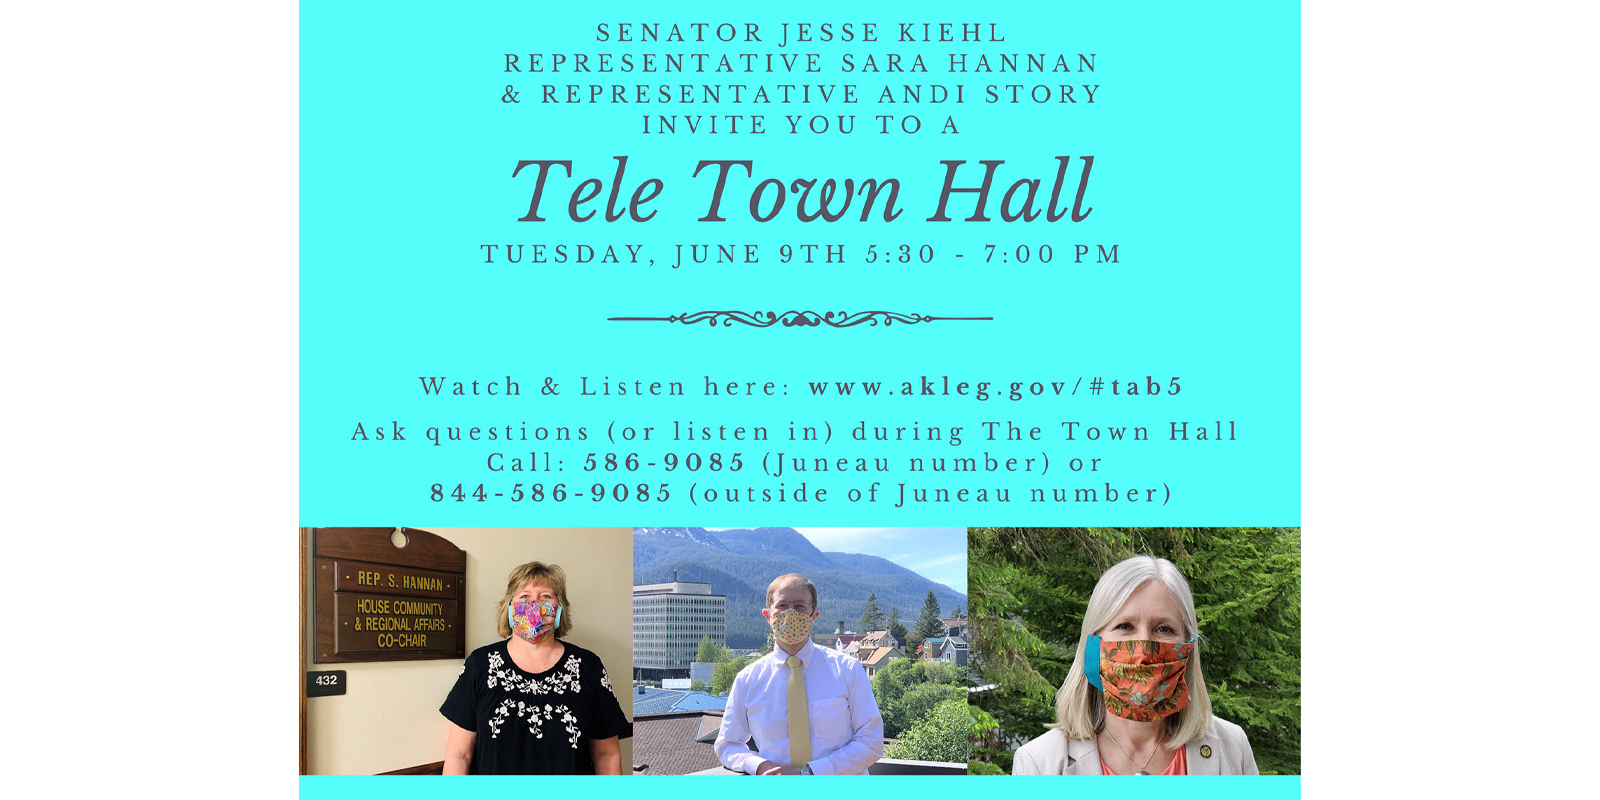 Tele Town HallTuesday June 9th 5:30-7:00PM